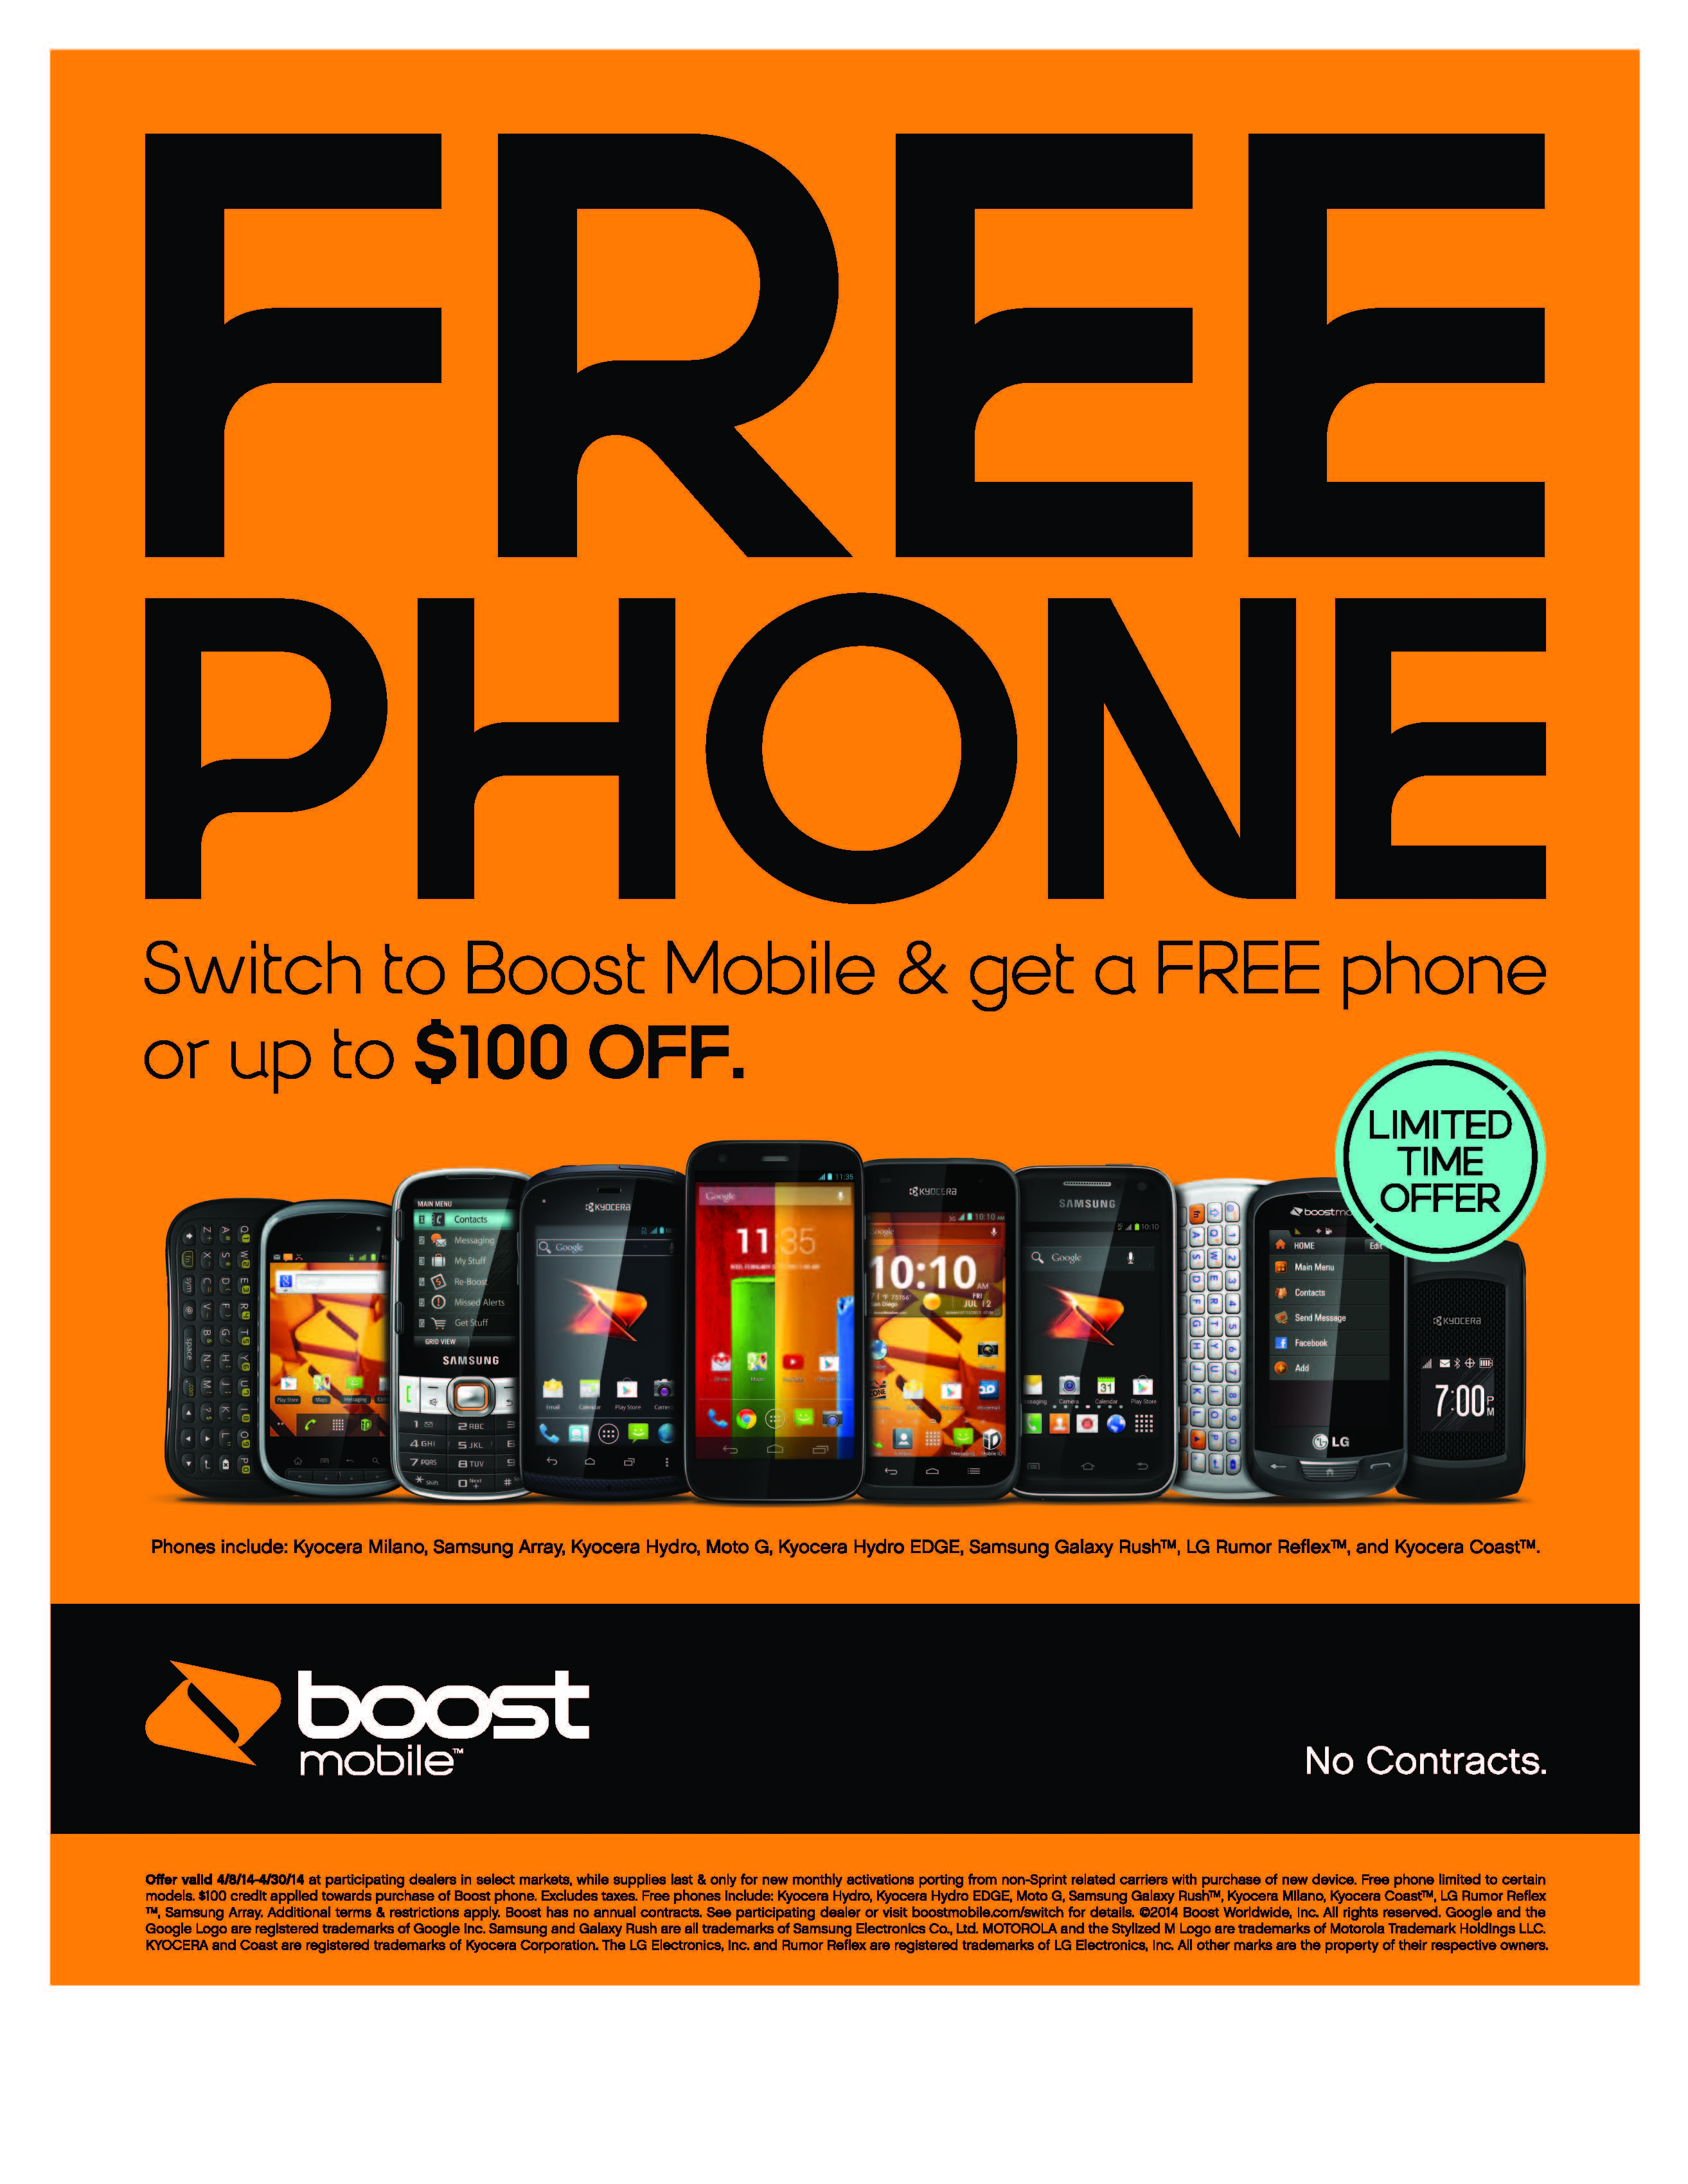 Re: Thinking about Switching from metro pcs to boost @njohns Hey there! If you've a compatible device with Boost Mobile already, you only need to provide us with the phone, PIN and account number you have with Metro PCS.